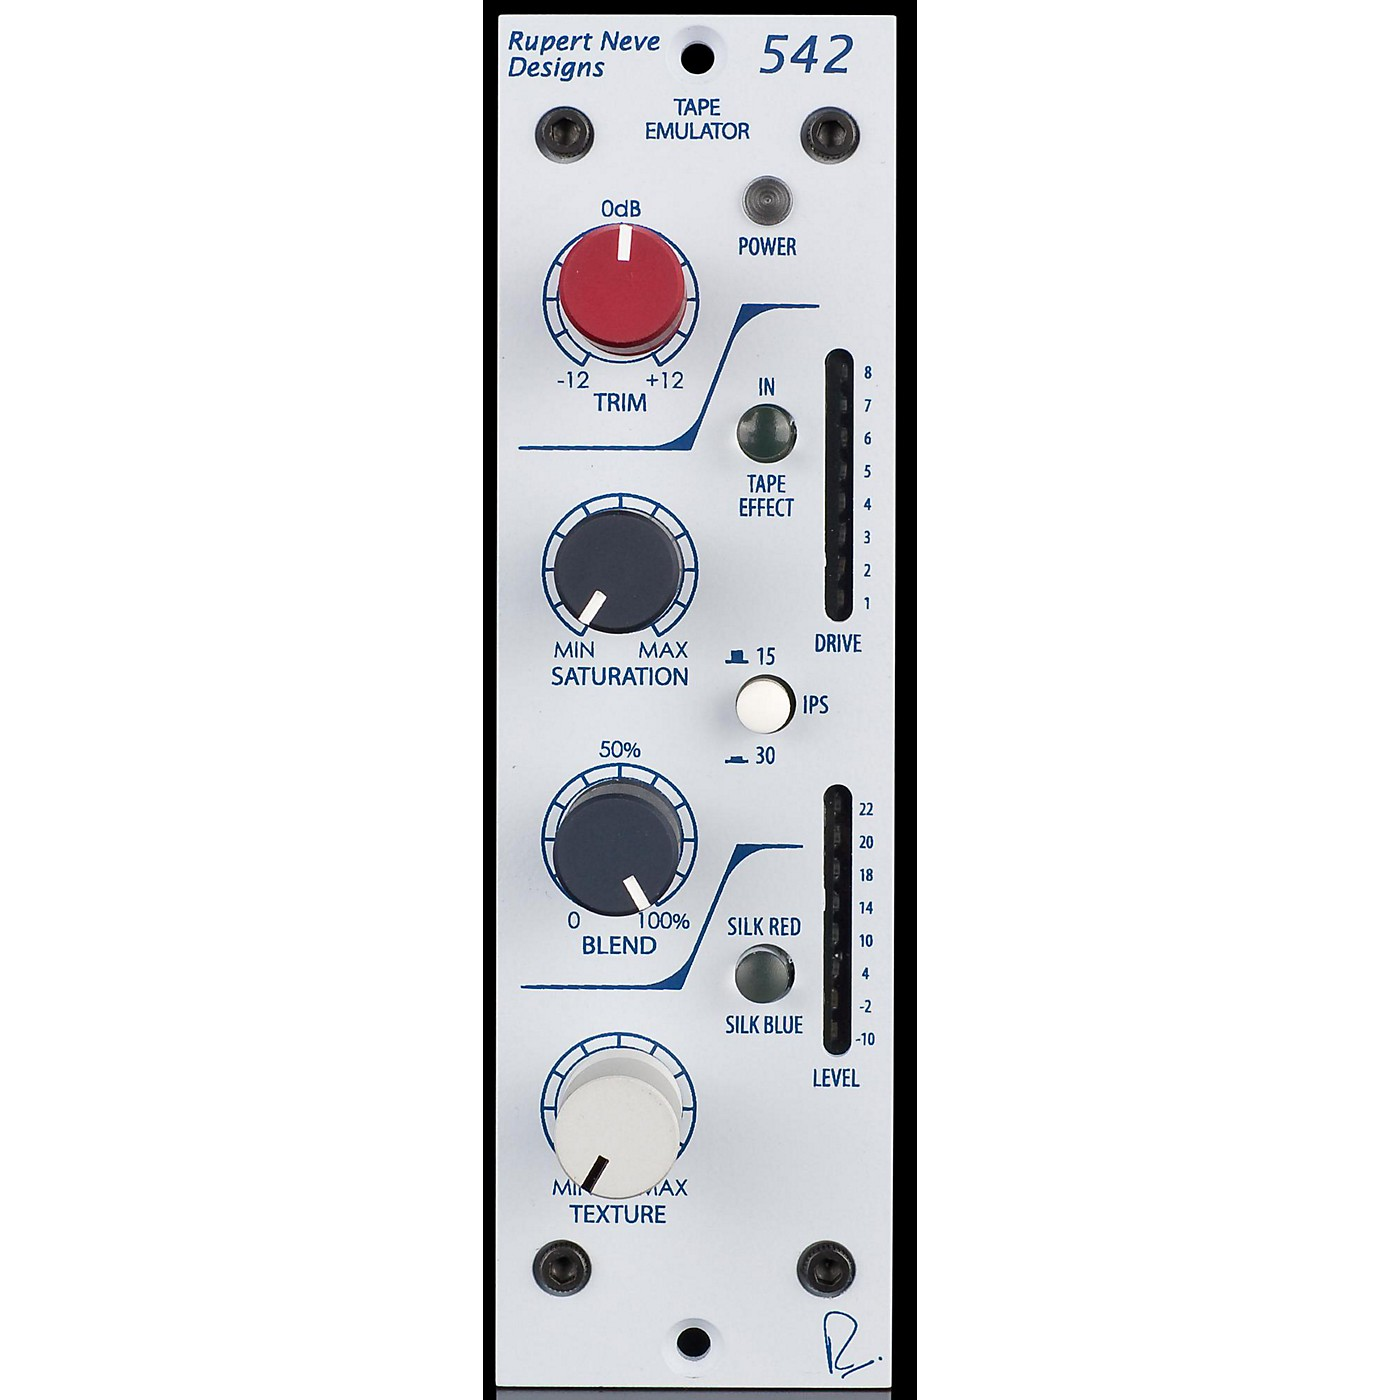 Rupert Neve Designs Portico 542 500 Series Tape FX thumbnail